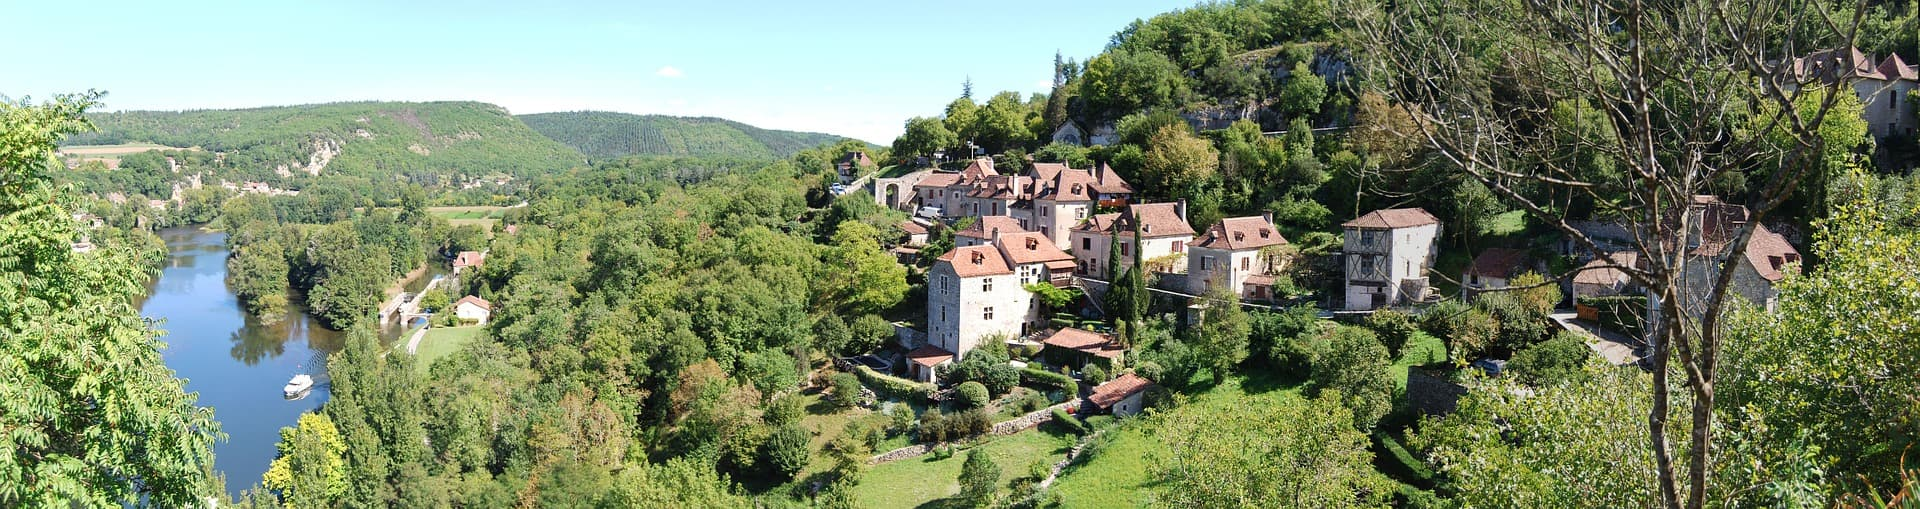 france-itineraire-vallee-du-lot